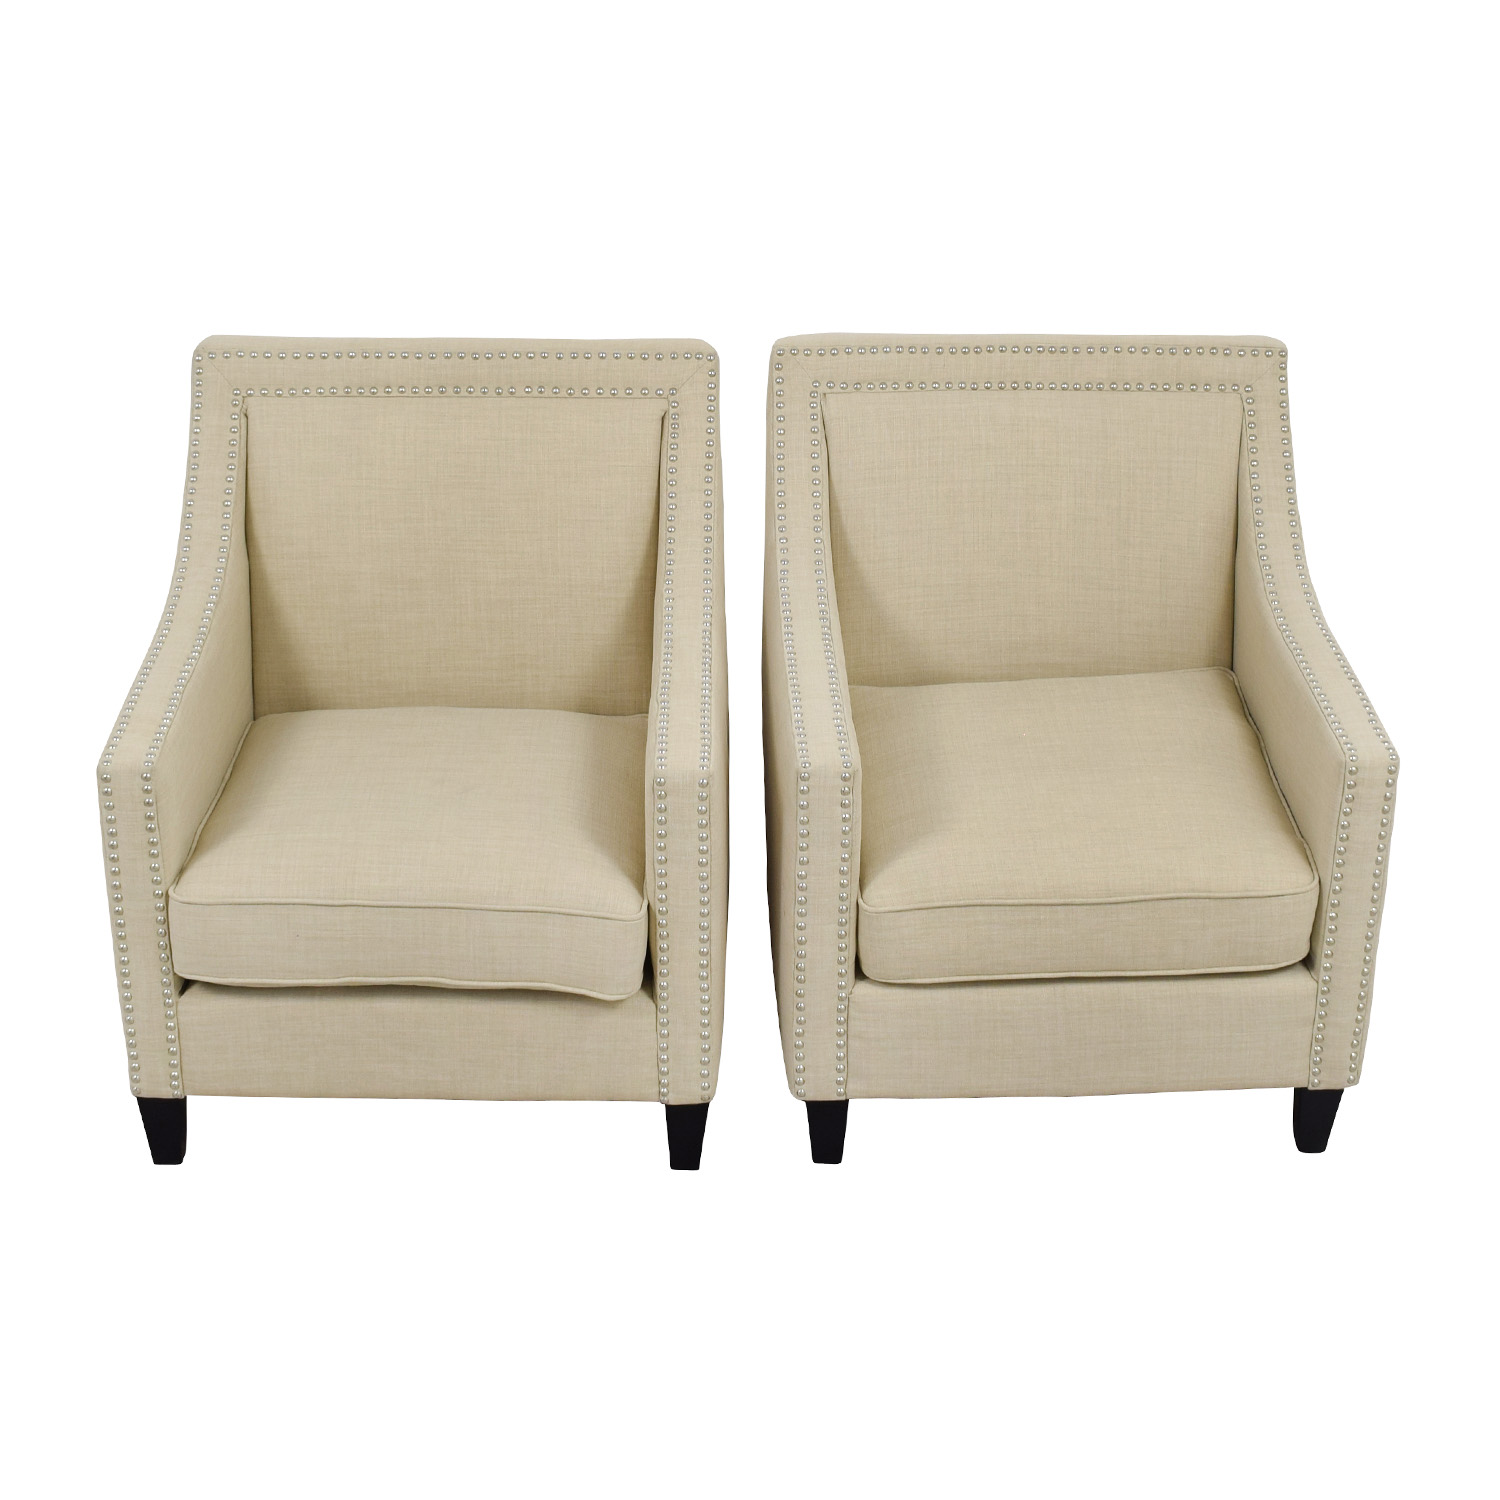 67 off studded beige sofa arm chairs chairs for Studded sofa sets